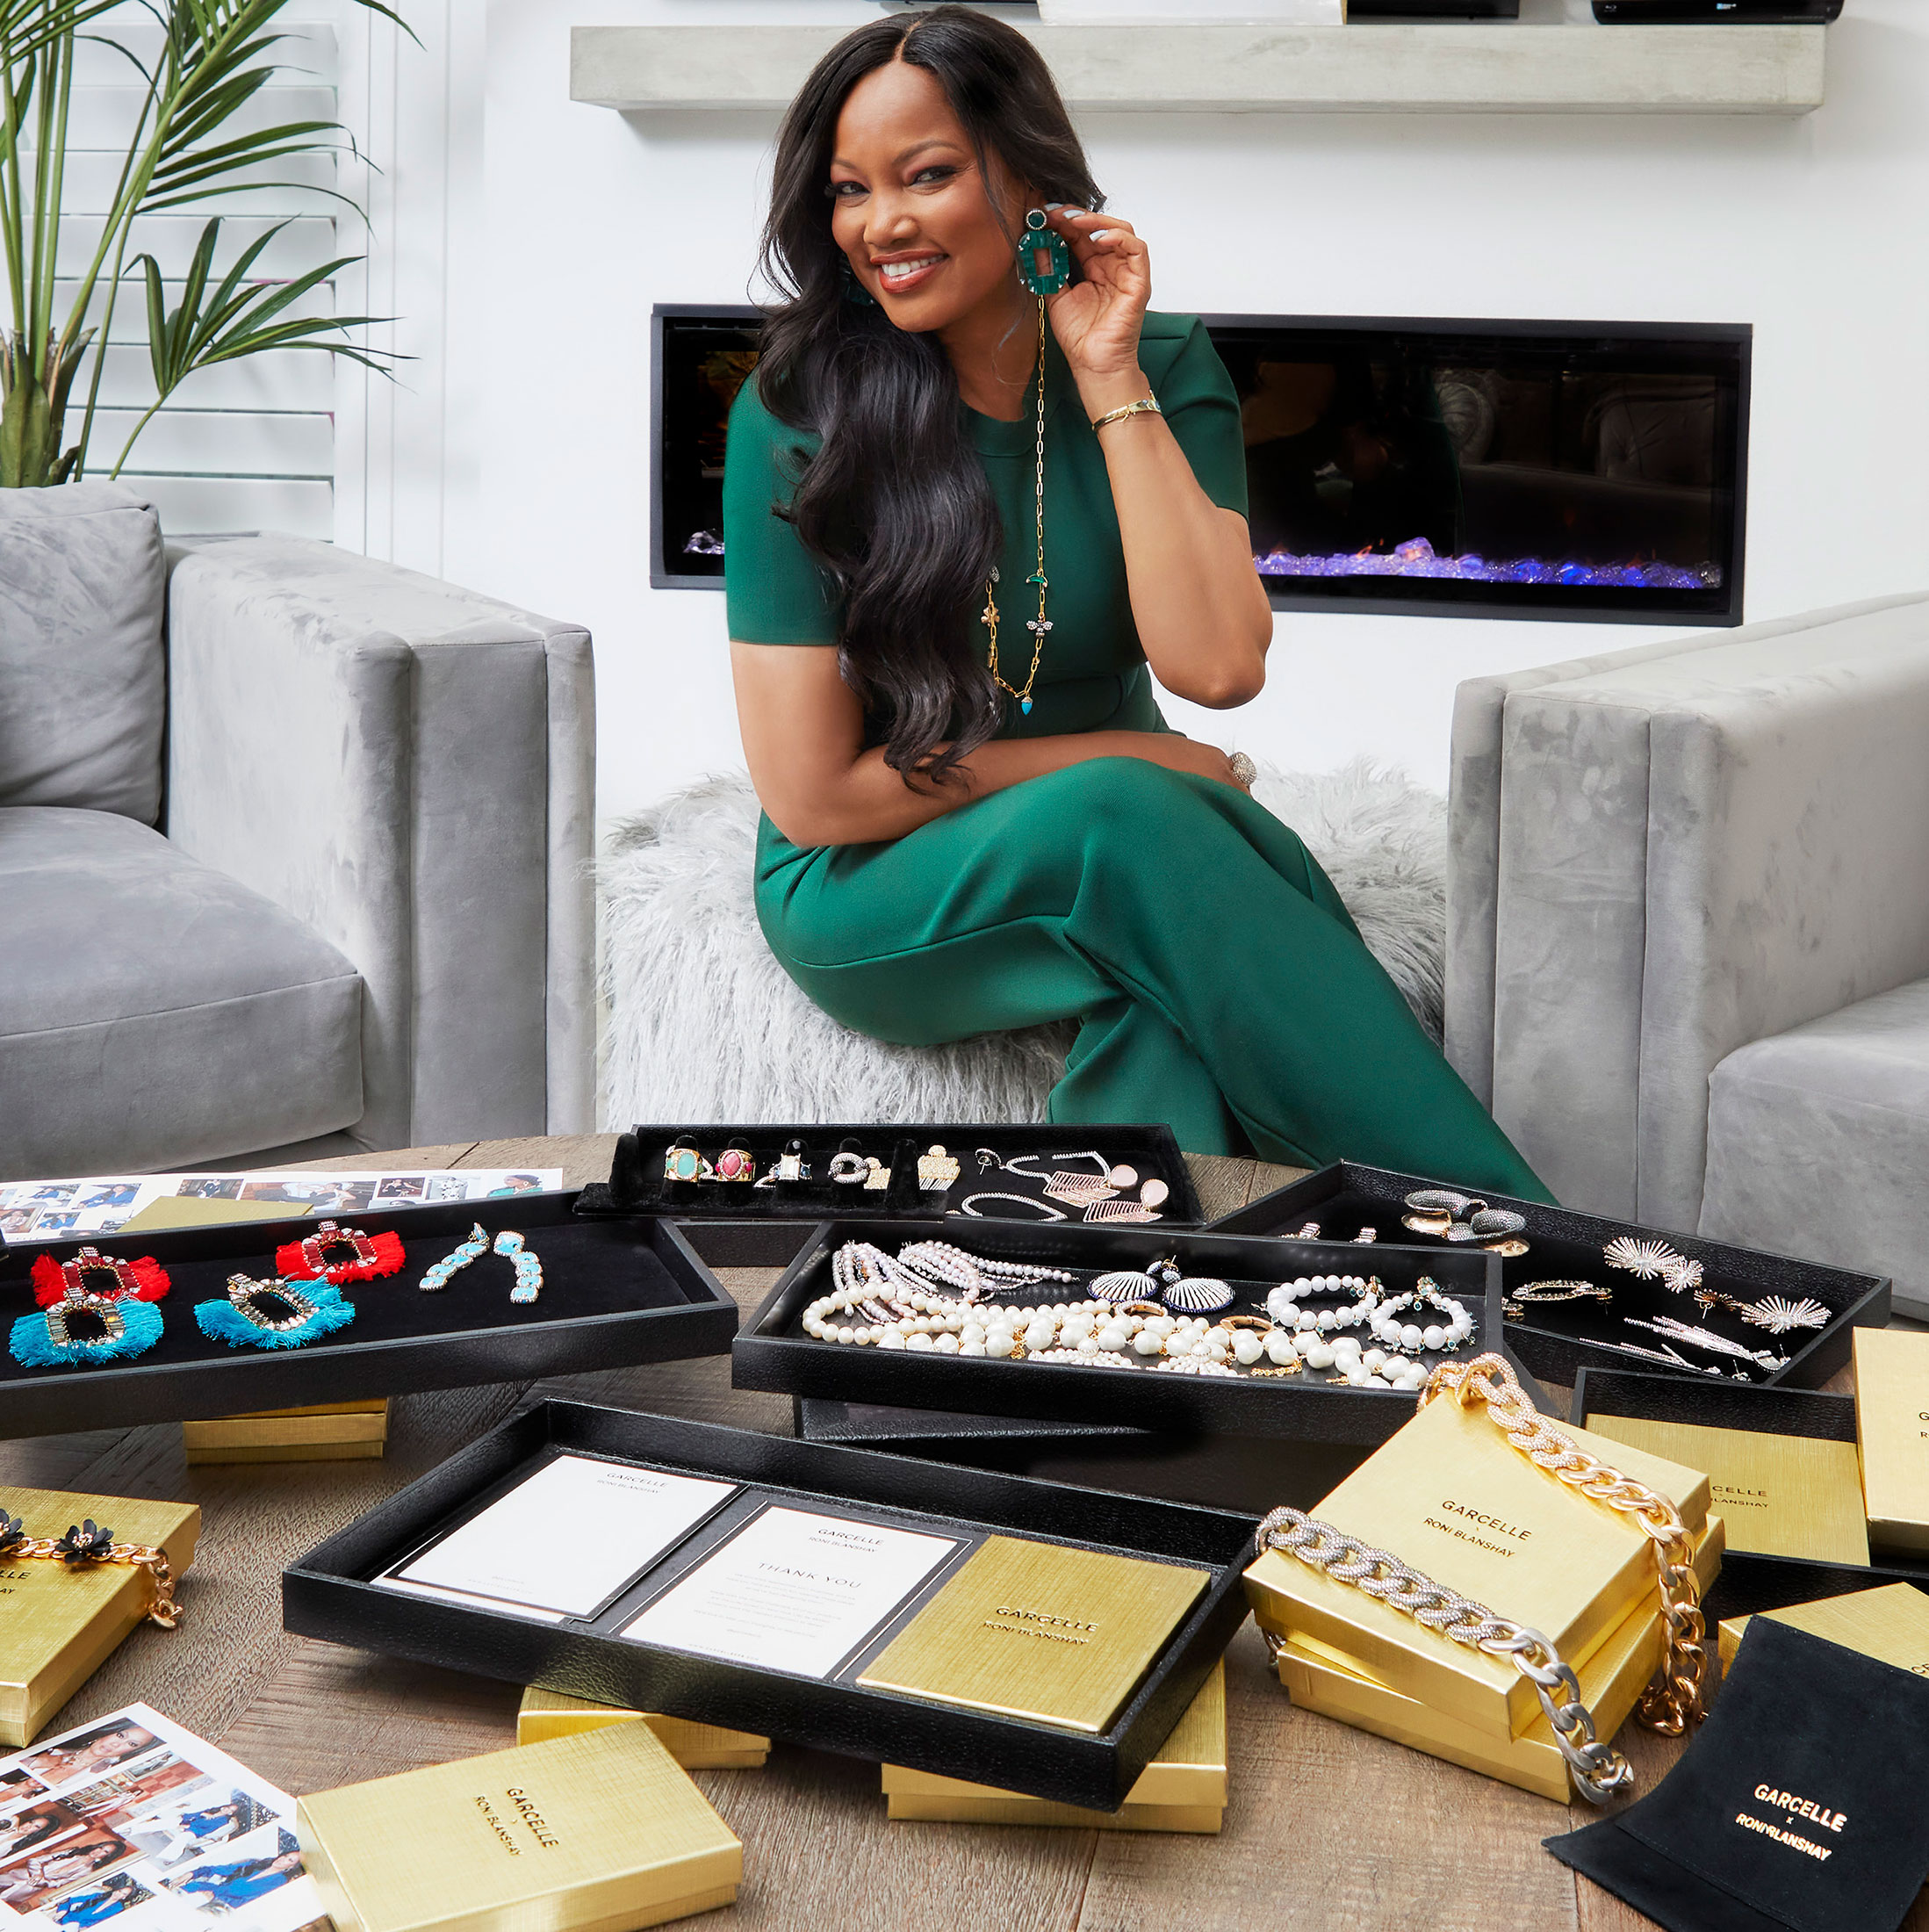 RHOBH's Garcelle Beauvais Is Breaking Into the Jewelry Business: Details